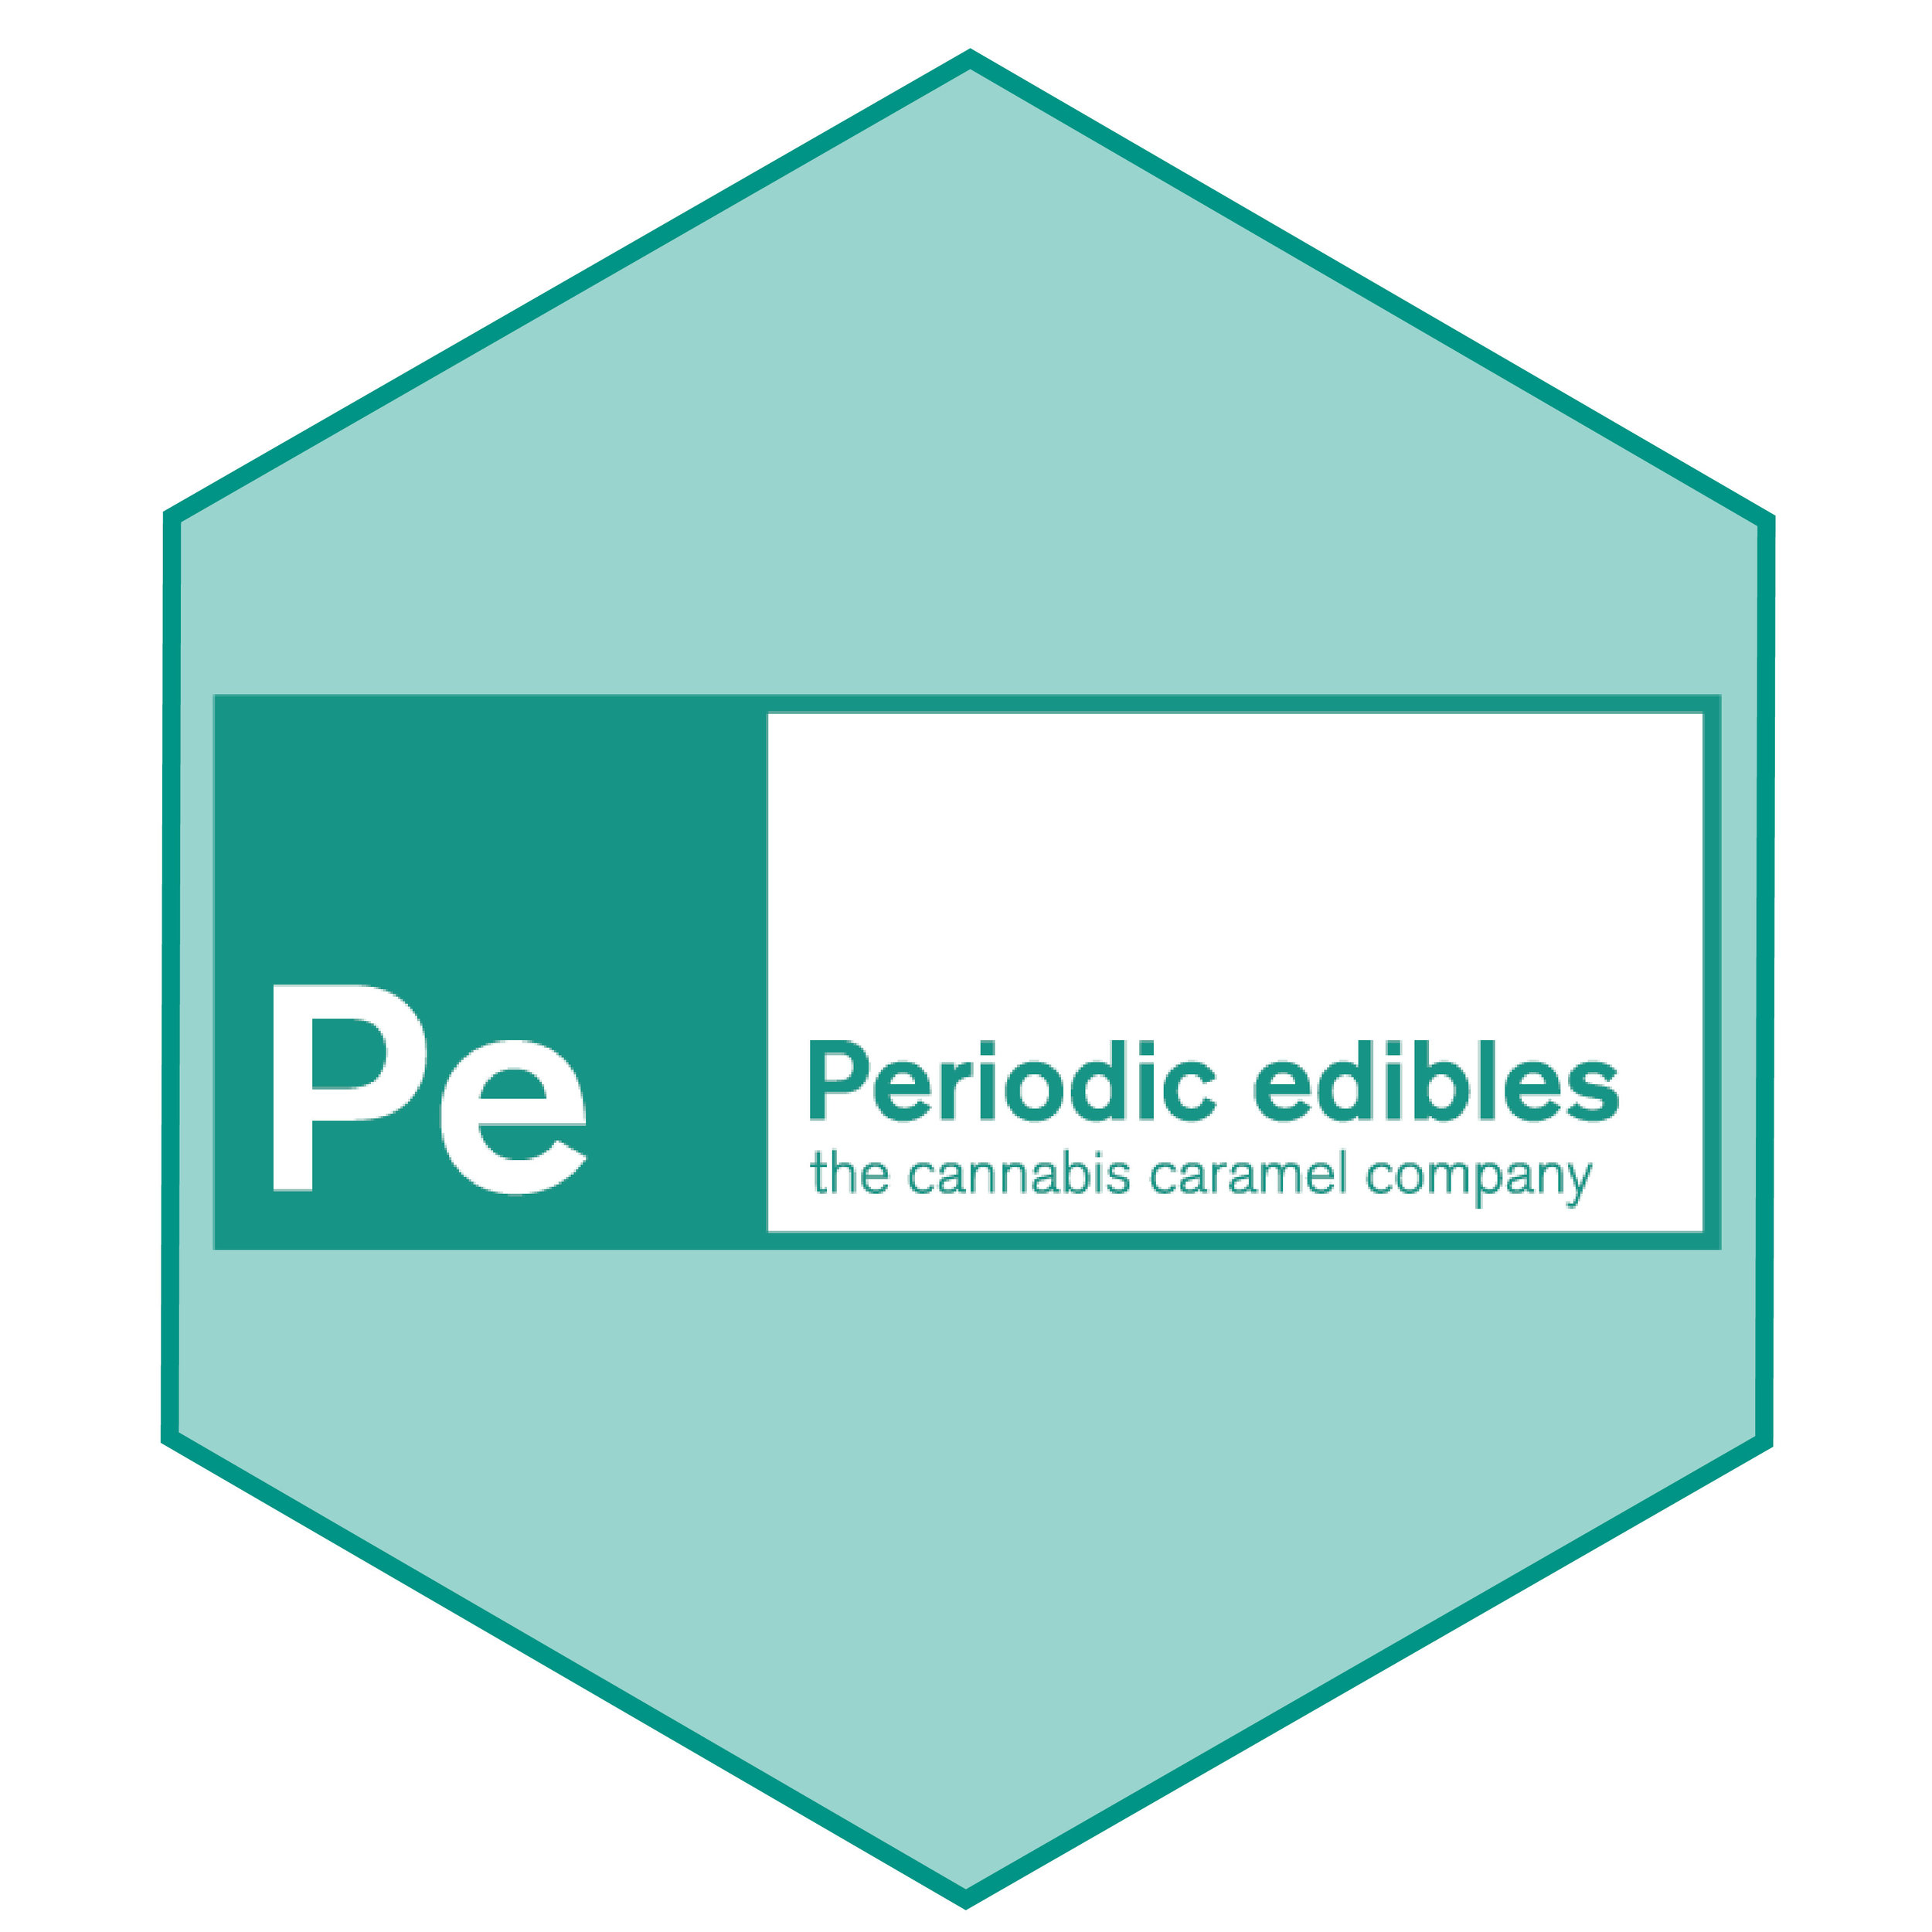 "Why Periodic edibles? - Our founder's background (bio below) was heavily focused on Science & Chemistry. With that background, Wayne decided to base the company, products, and brand around ""The Science of Cannabis"". The more Wayne learned about caramels, the more he discovered it takes a high level of focus on chemistry to make great caramels, especially when scaling to larger batches while keeping an artisanal caramel recipe. Who would have thought Wayne would eventually use his college degree to make cannabis products - we're sure the college counselor didn't :)"